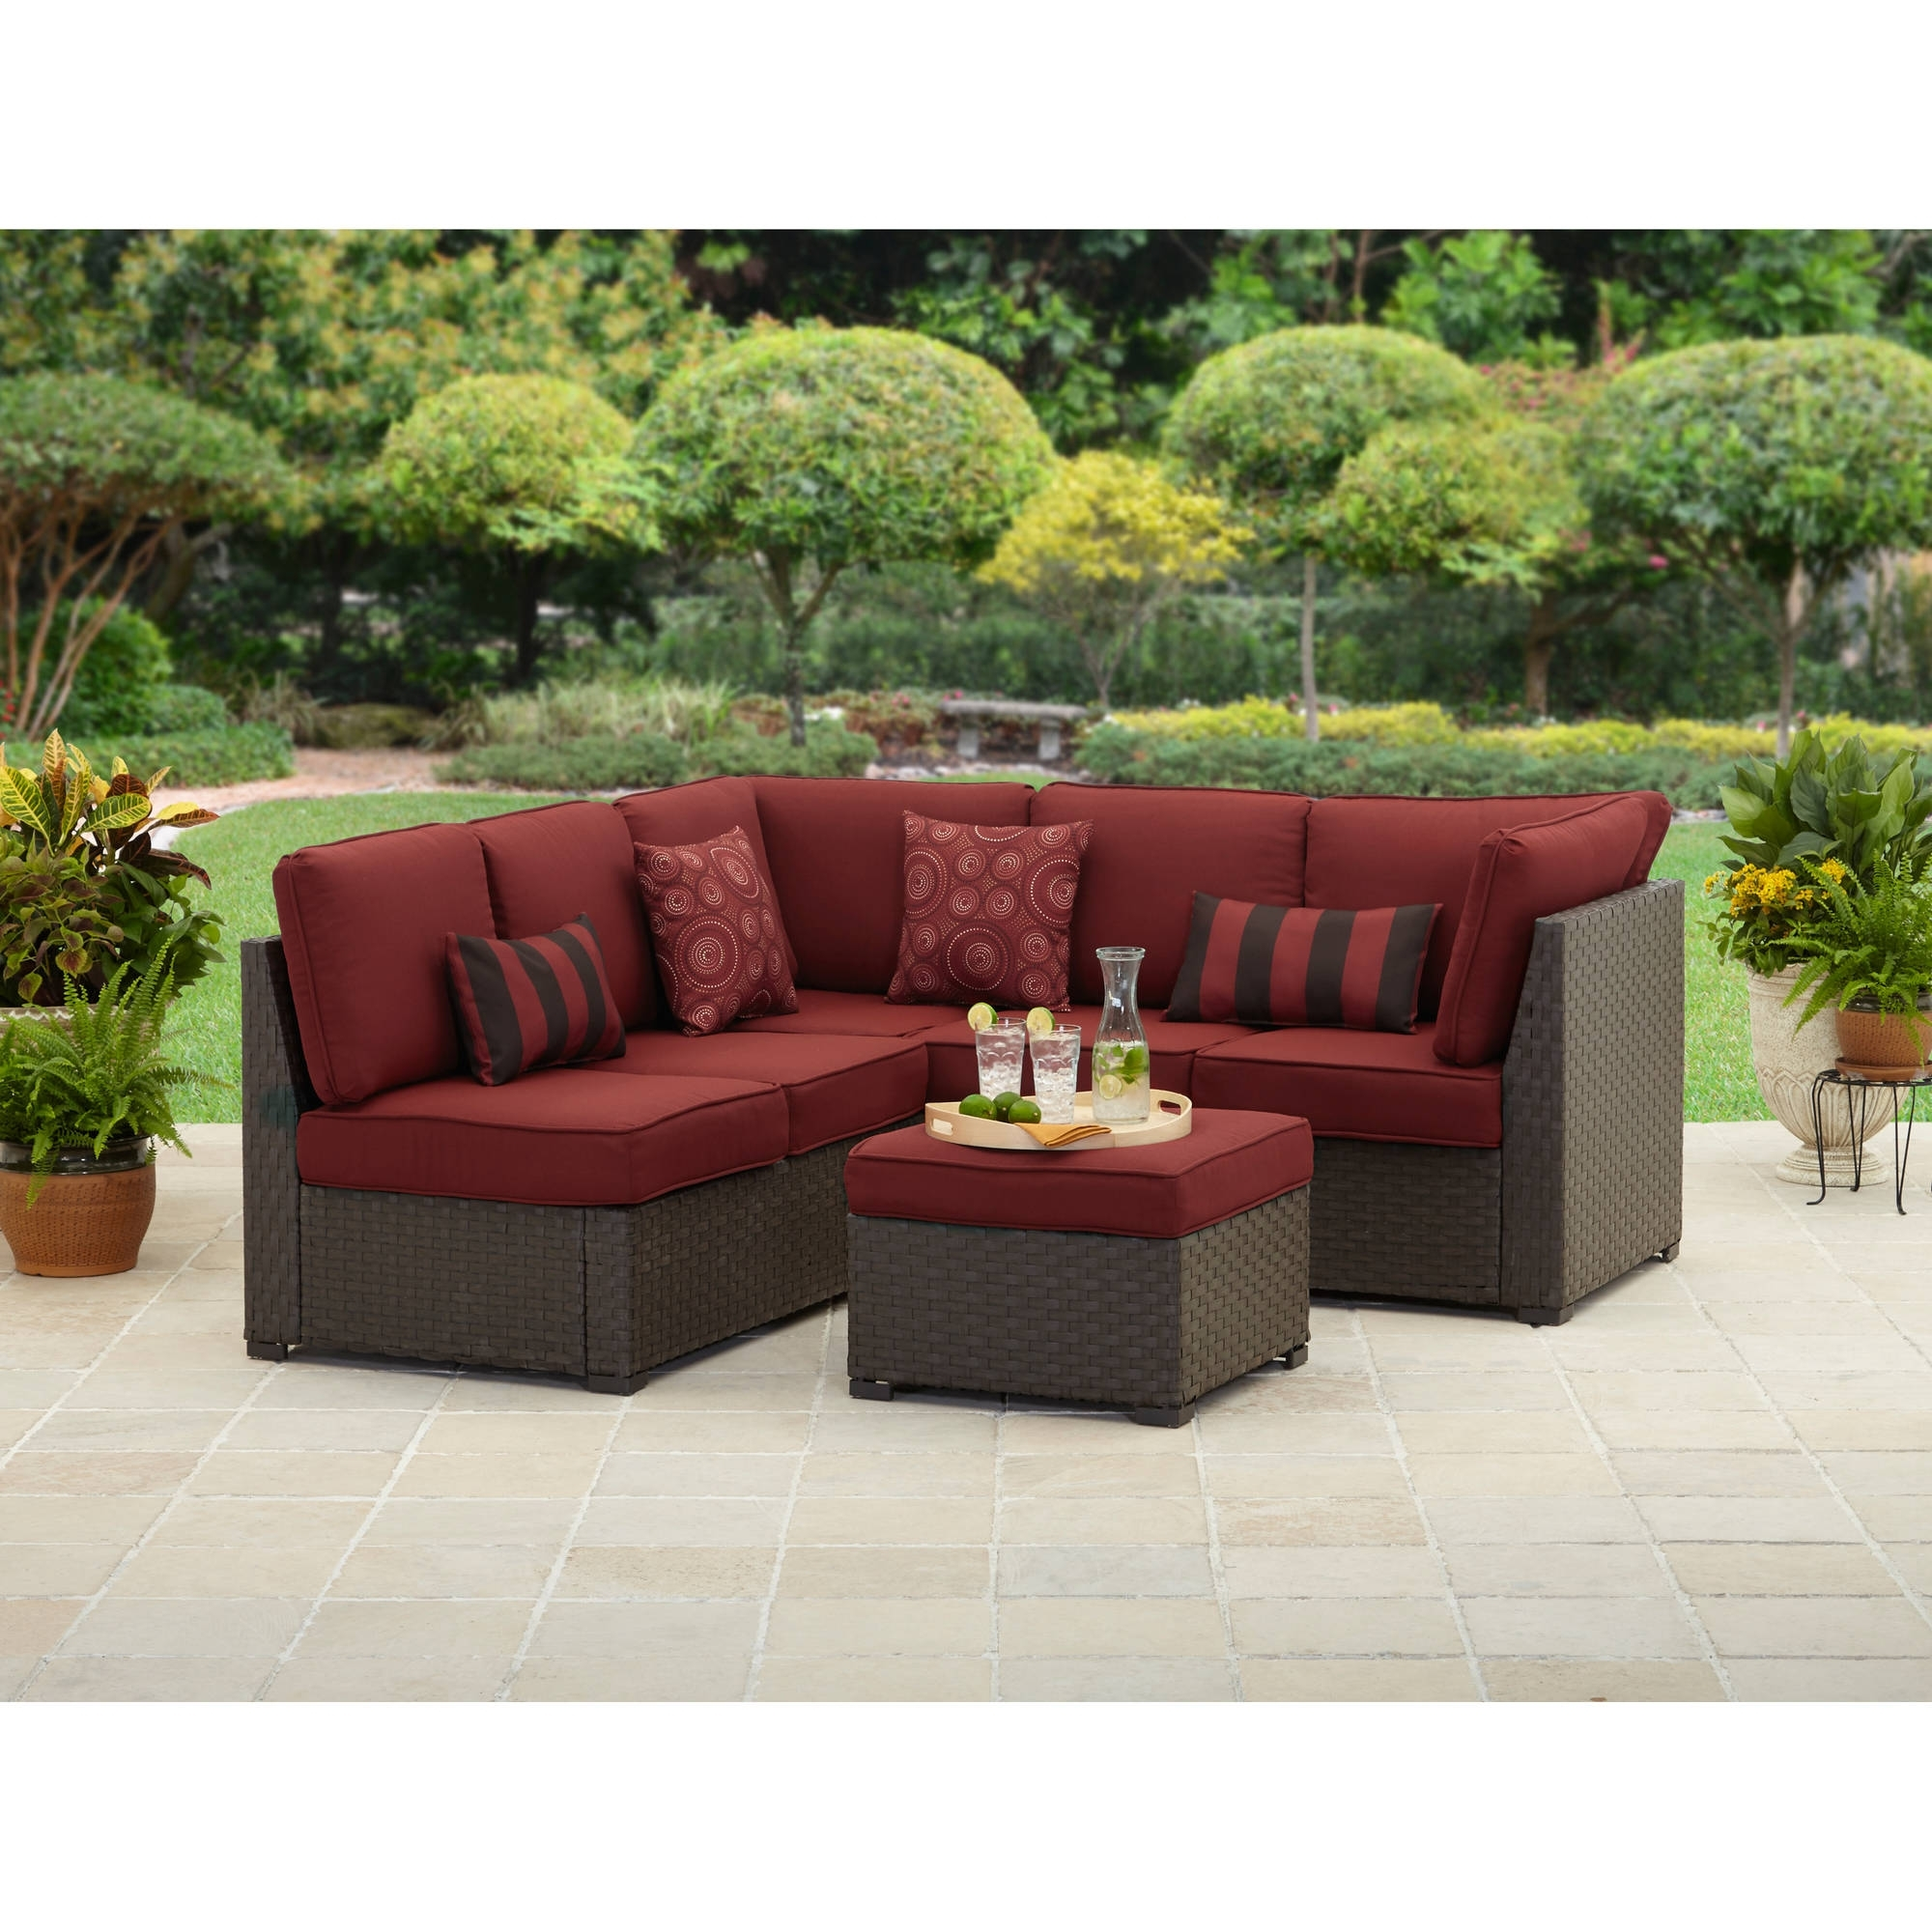 Patio Sofas For Most Recent Better Homes And Gardens Rush Valley 3 Piece Outdoor Sectional (View 8 of 20)